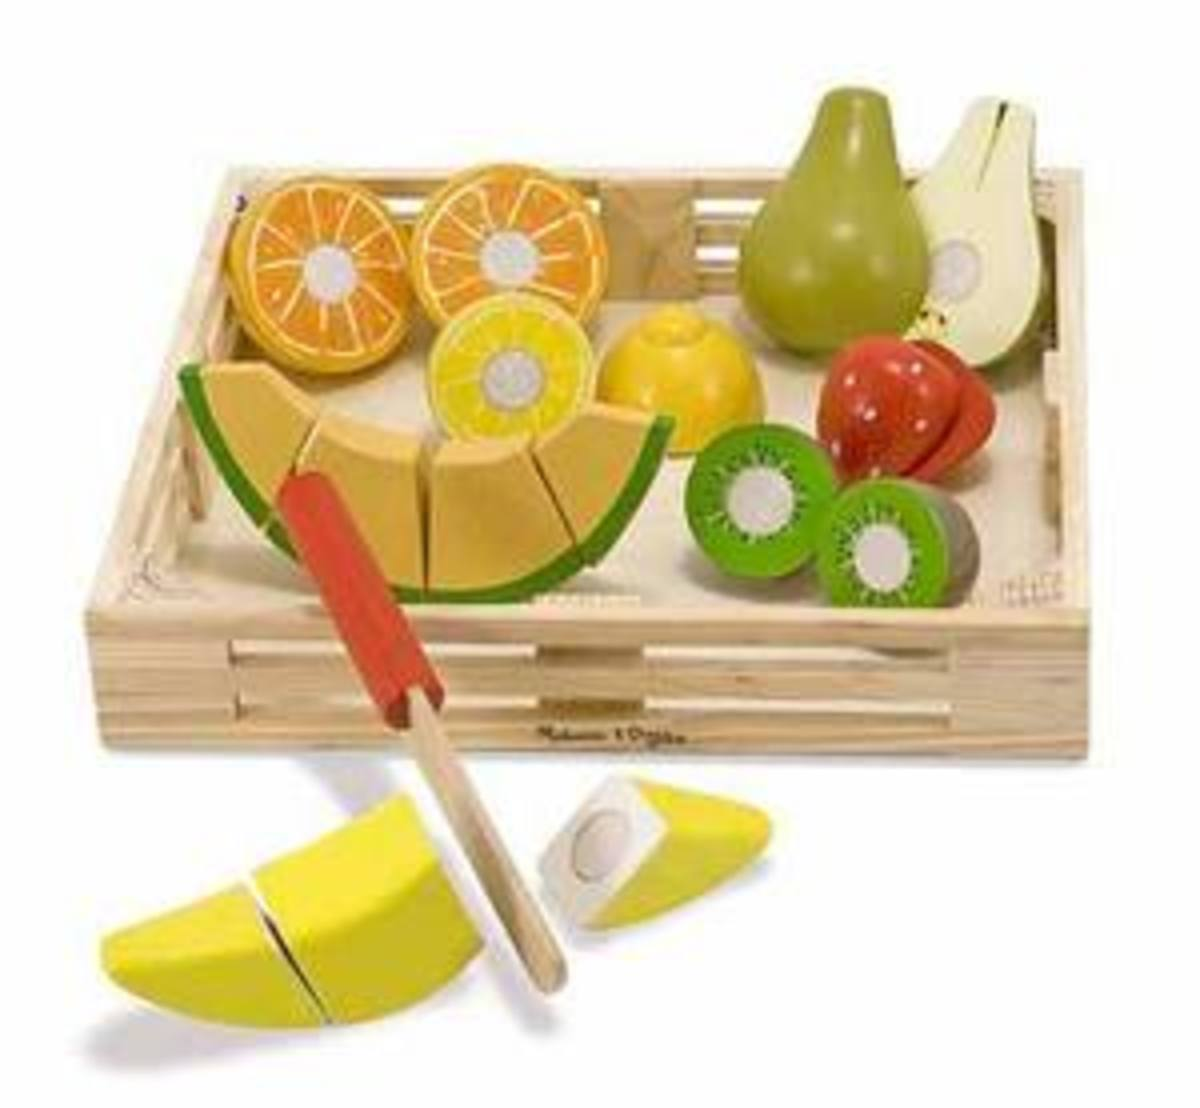 2013 Gift Ideas: The Little Foodie